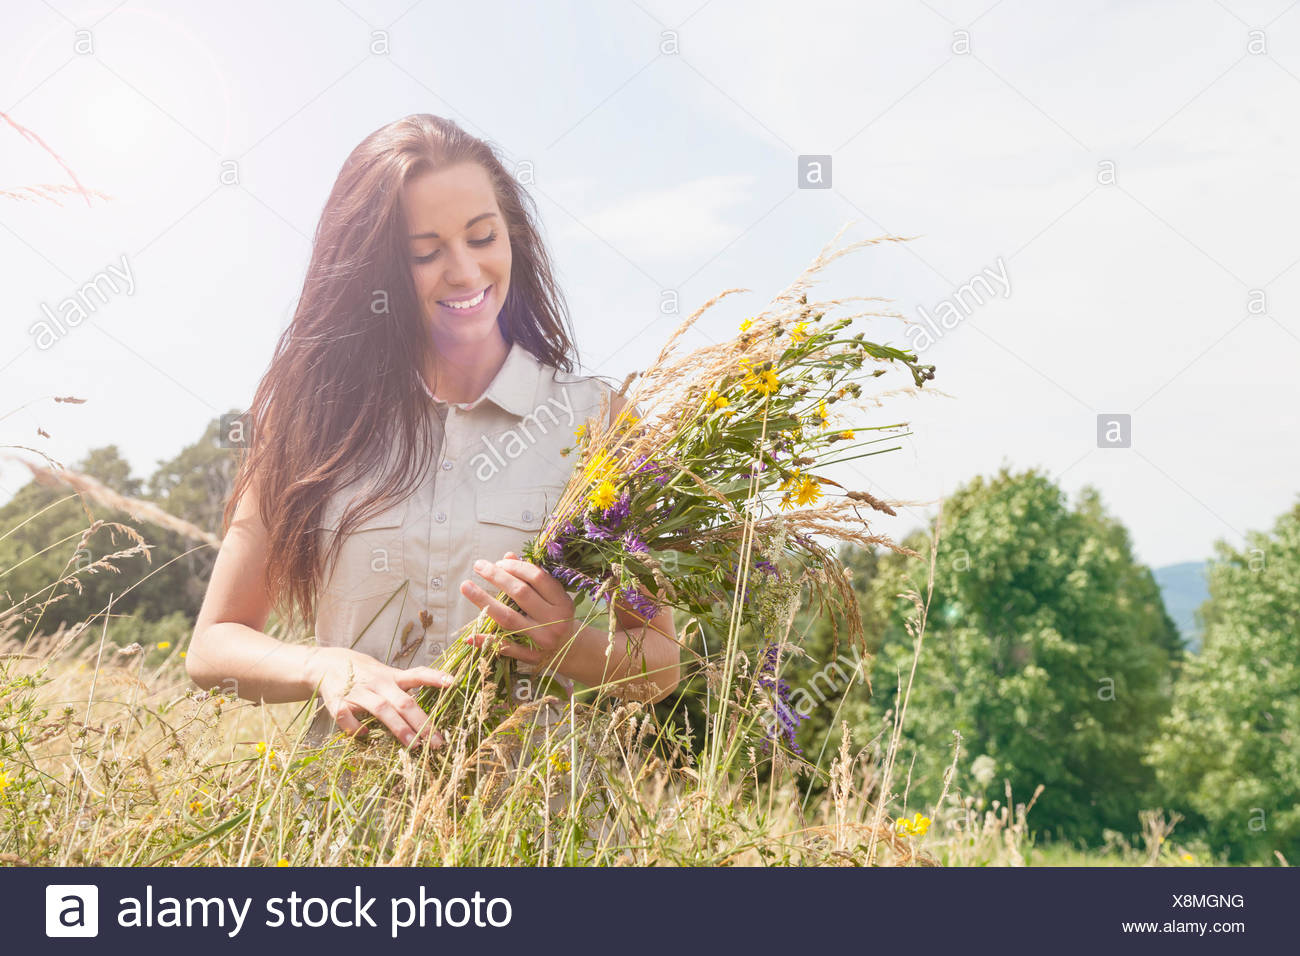 Young woman holding bunch of fresh picked wildflowers in field - Stock Image